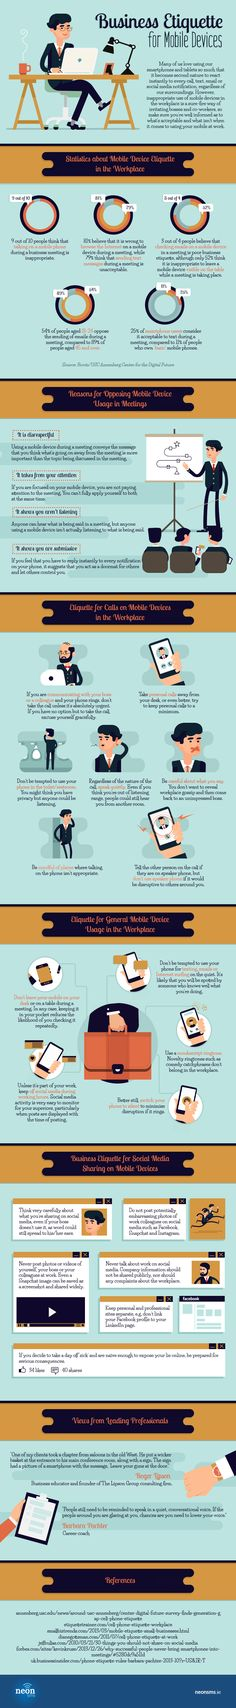 Business Etiquette for Mobile Devices #Infographic #Business #MobileDevices